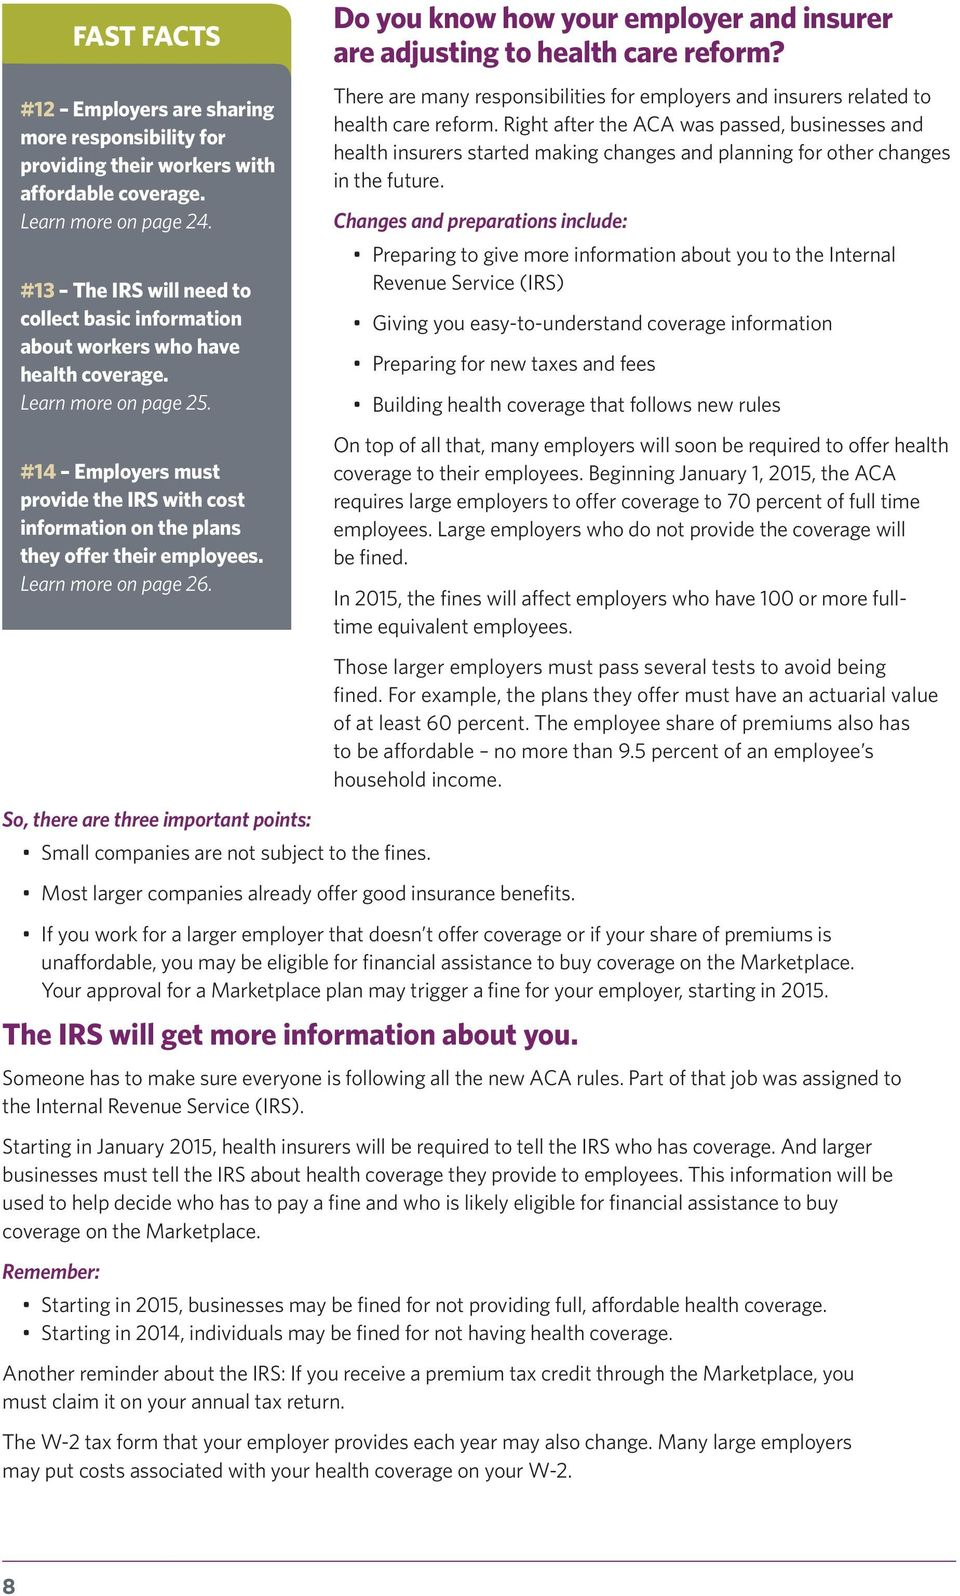 #14 Employers must provide the IRS with cost information on the plans they offer their employees. Learn more on page 26. Do you know how your employer and insurer are adjusting to health care reform?